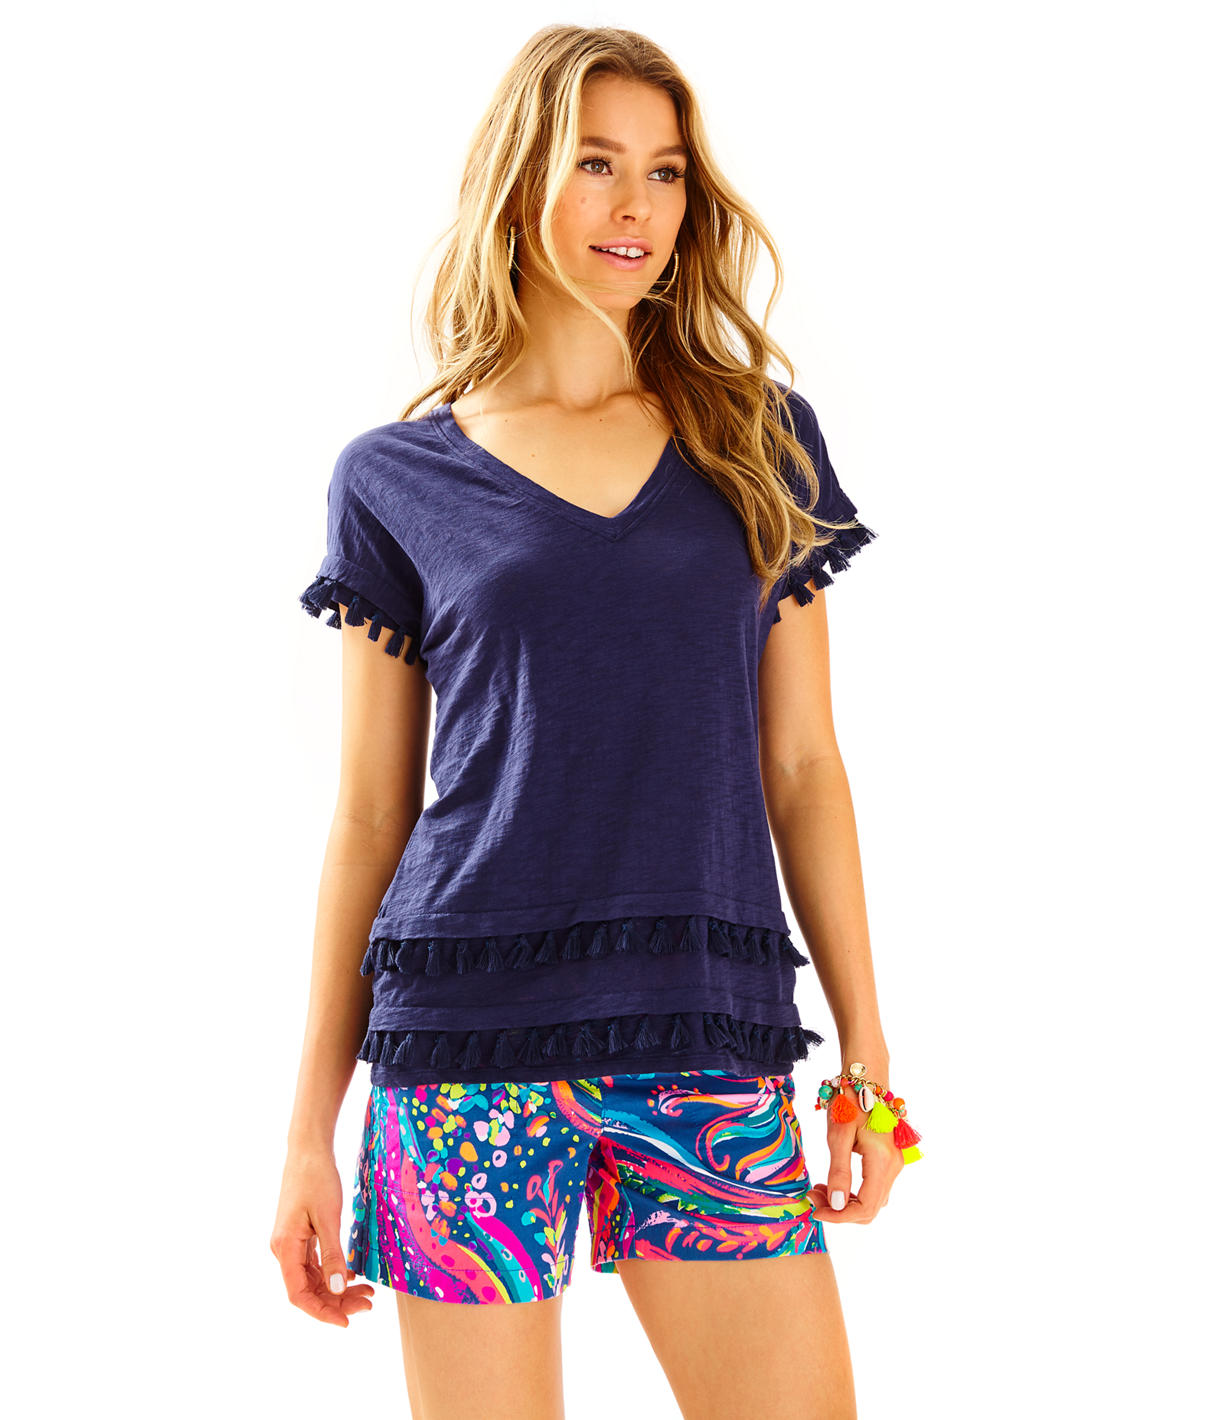 Lilly Pulitzer Daley Tee